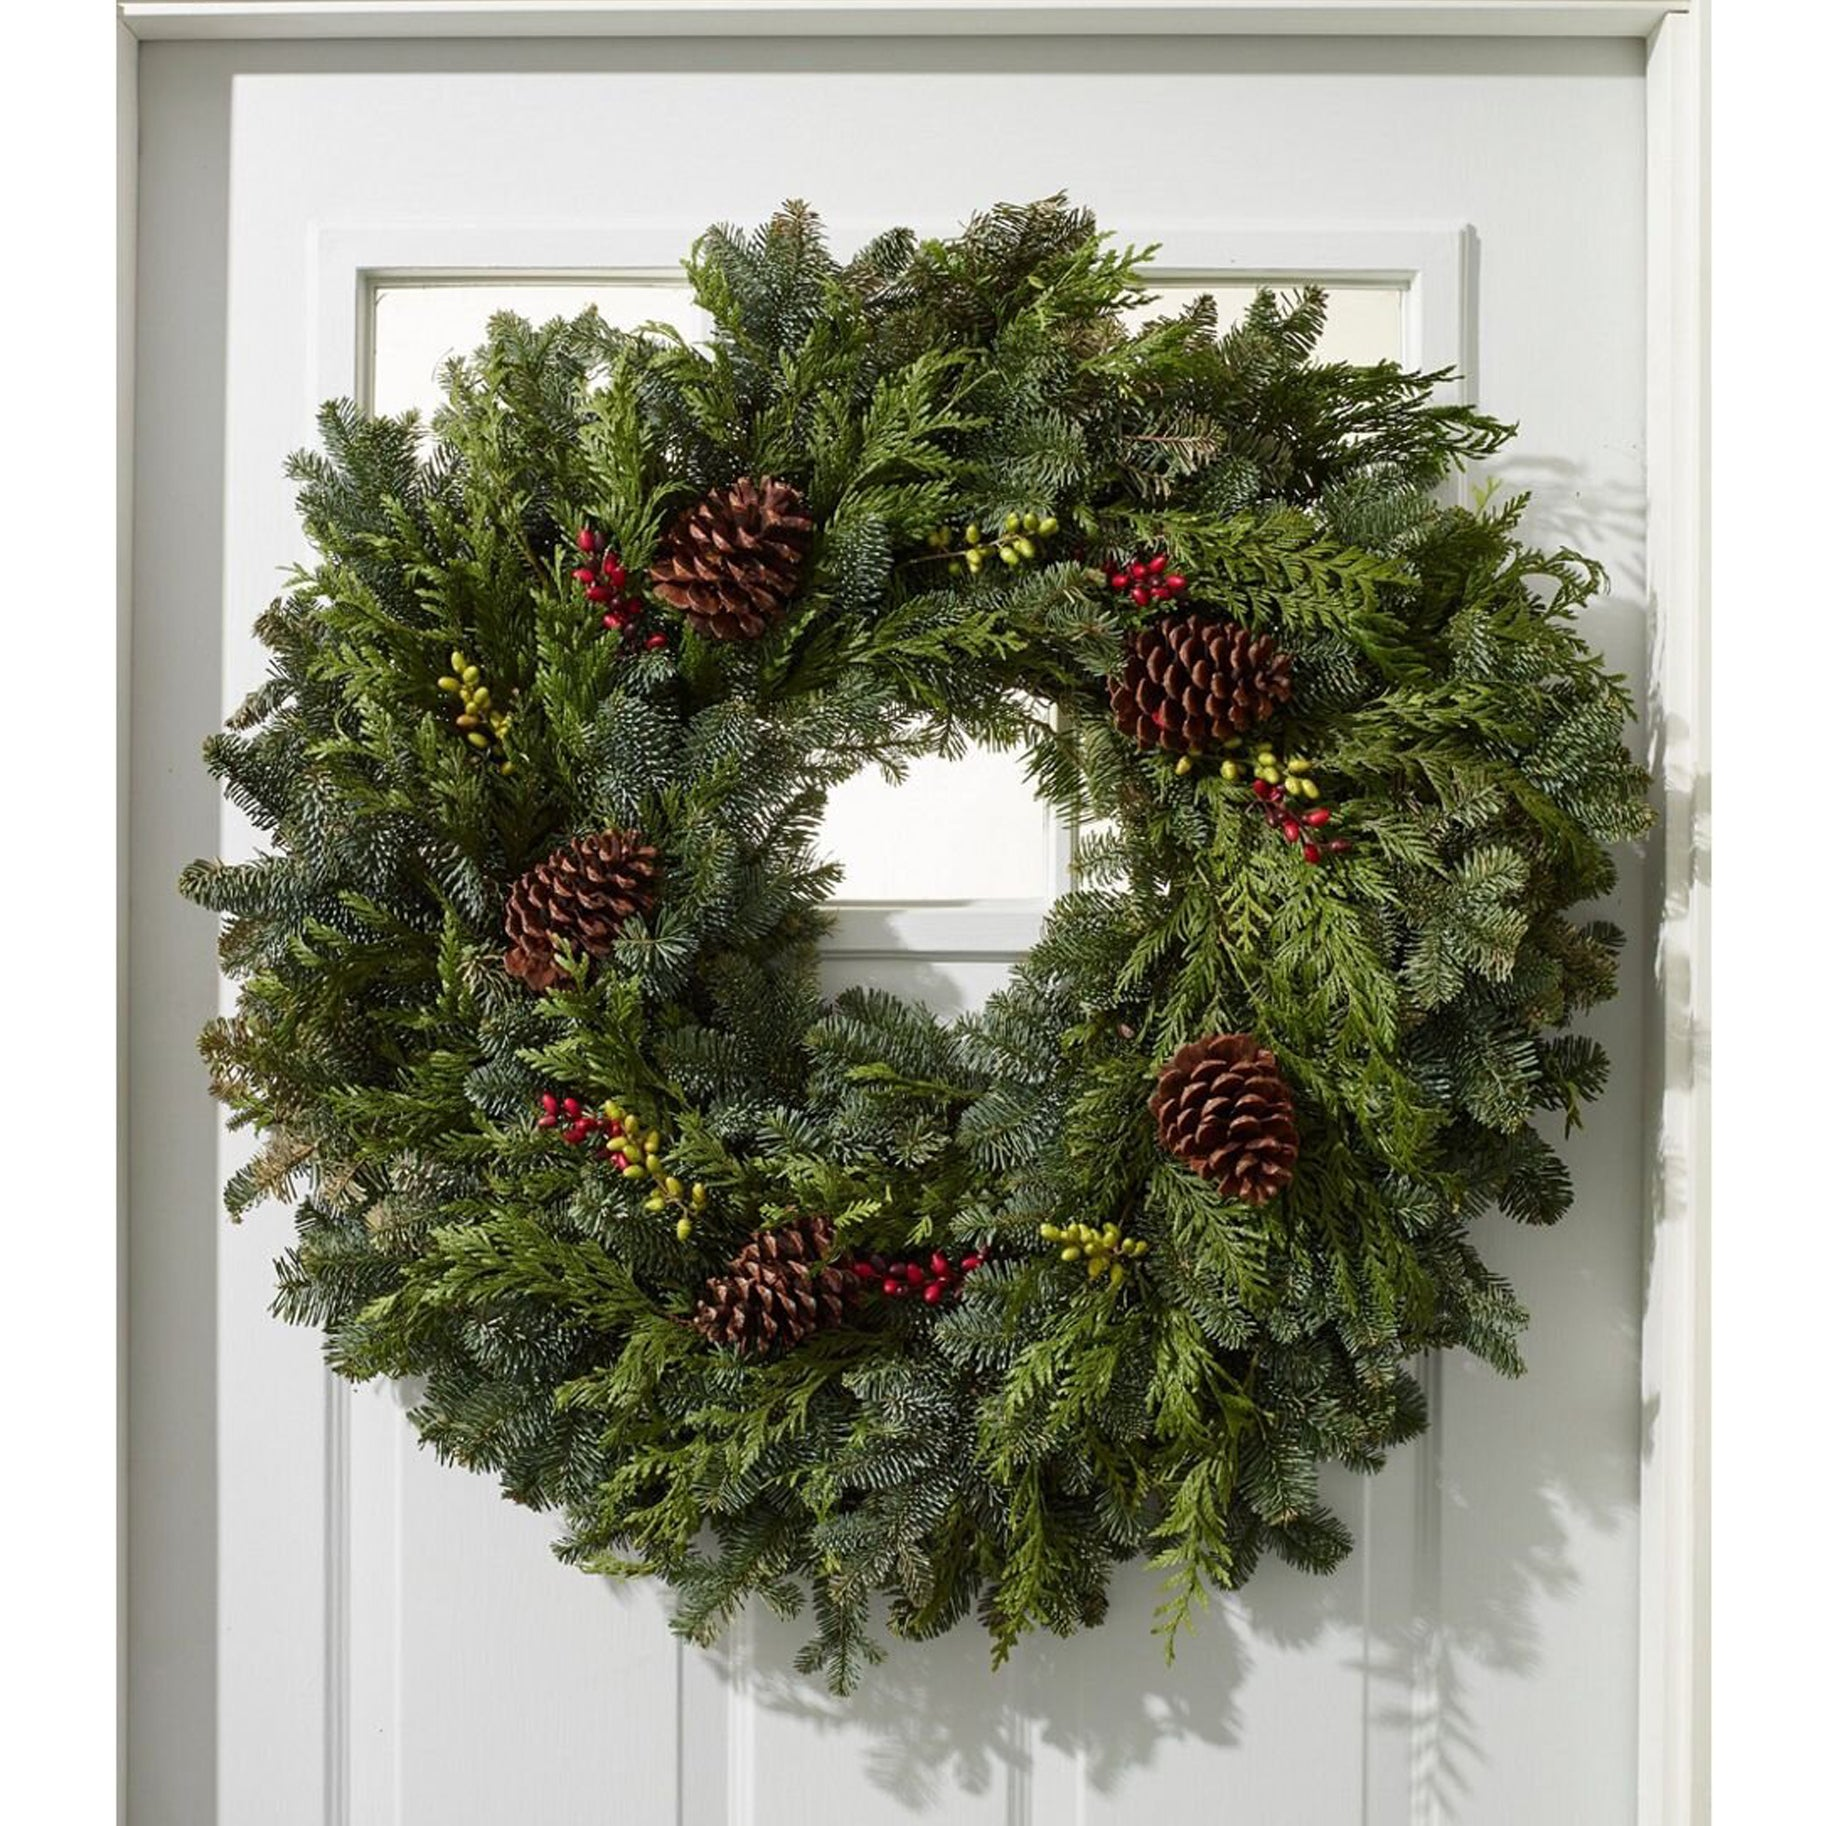 The Best Holiday Wreaths Option: L.L. Bean Woodland Berry Wreath